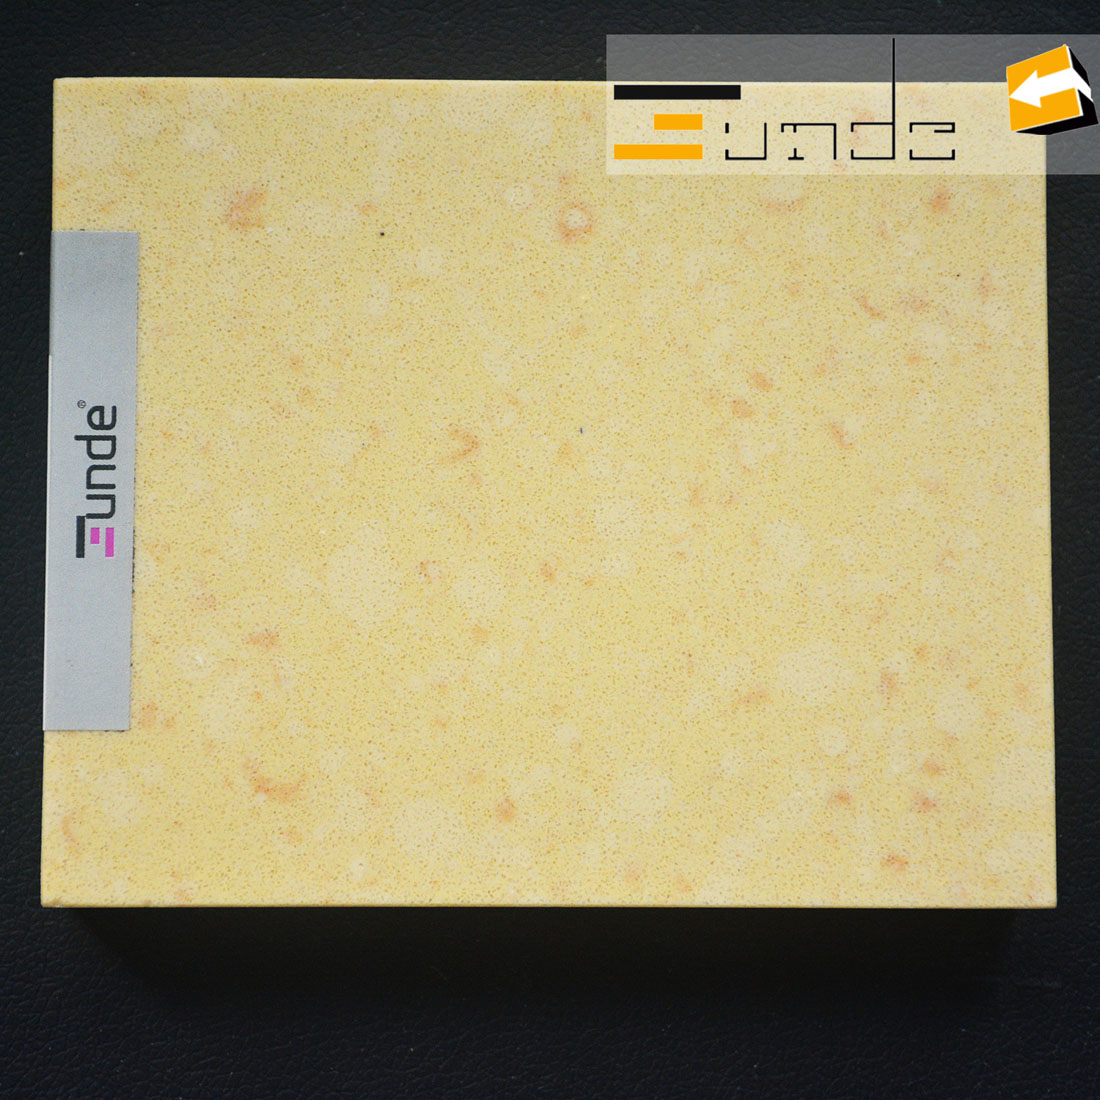 calacatta yellow quartz stone sample jd412-1